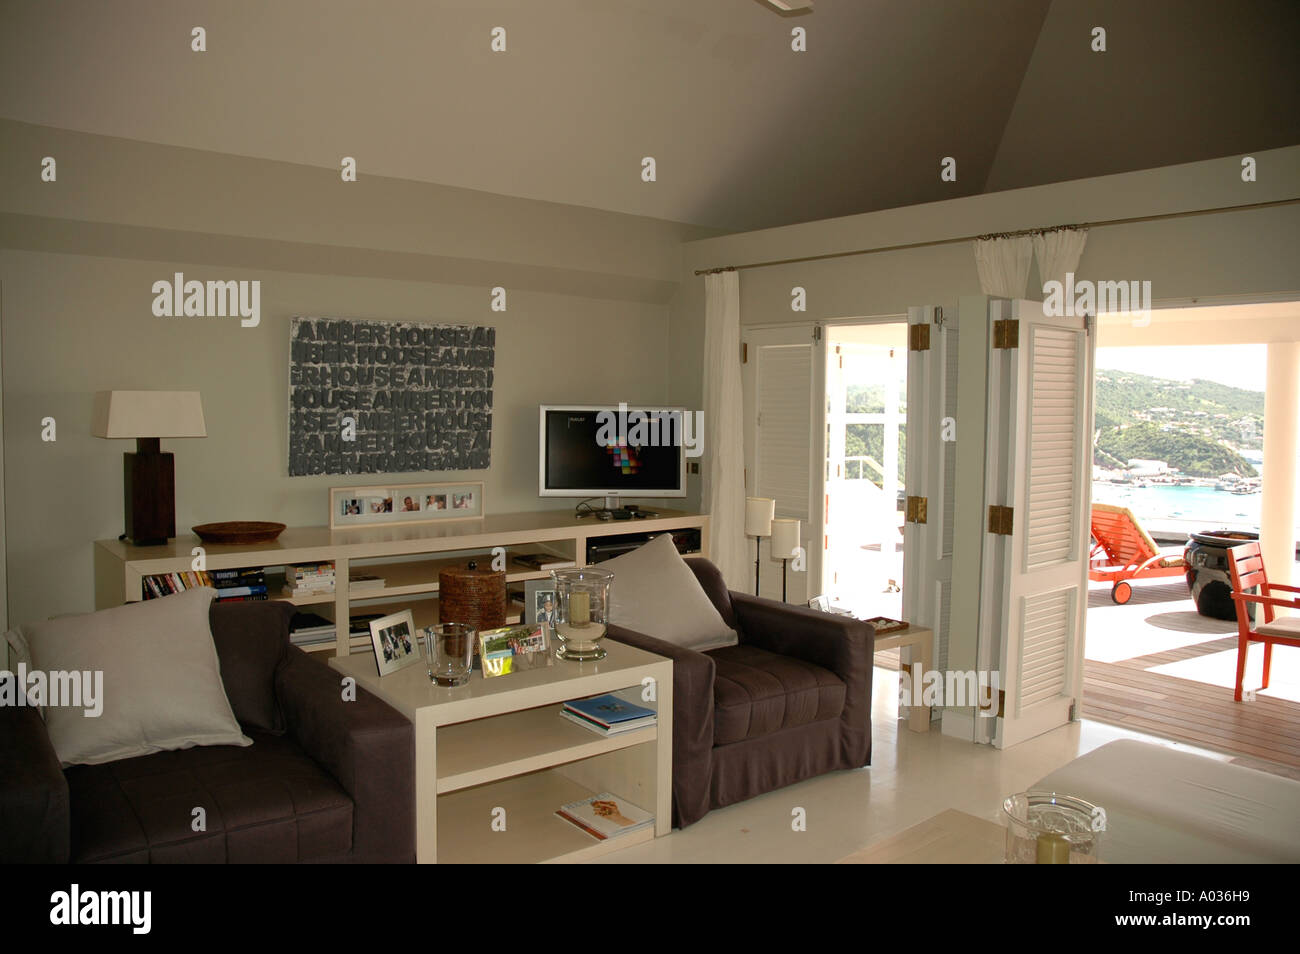 Saint Barth  St Barts Private Villa living room showing bright outdoors - Stock Image